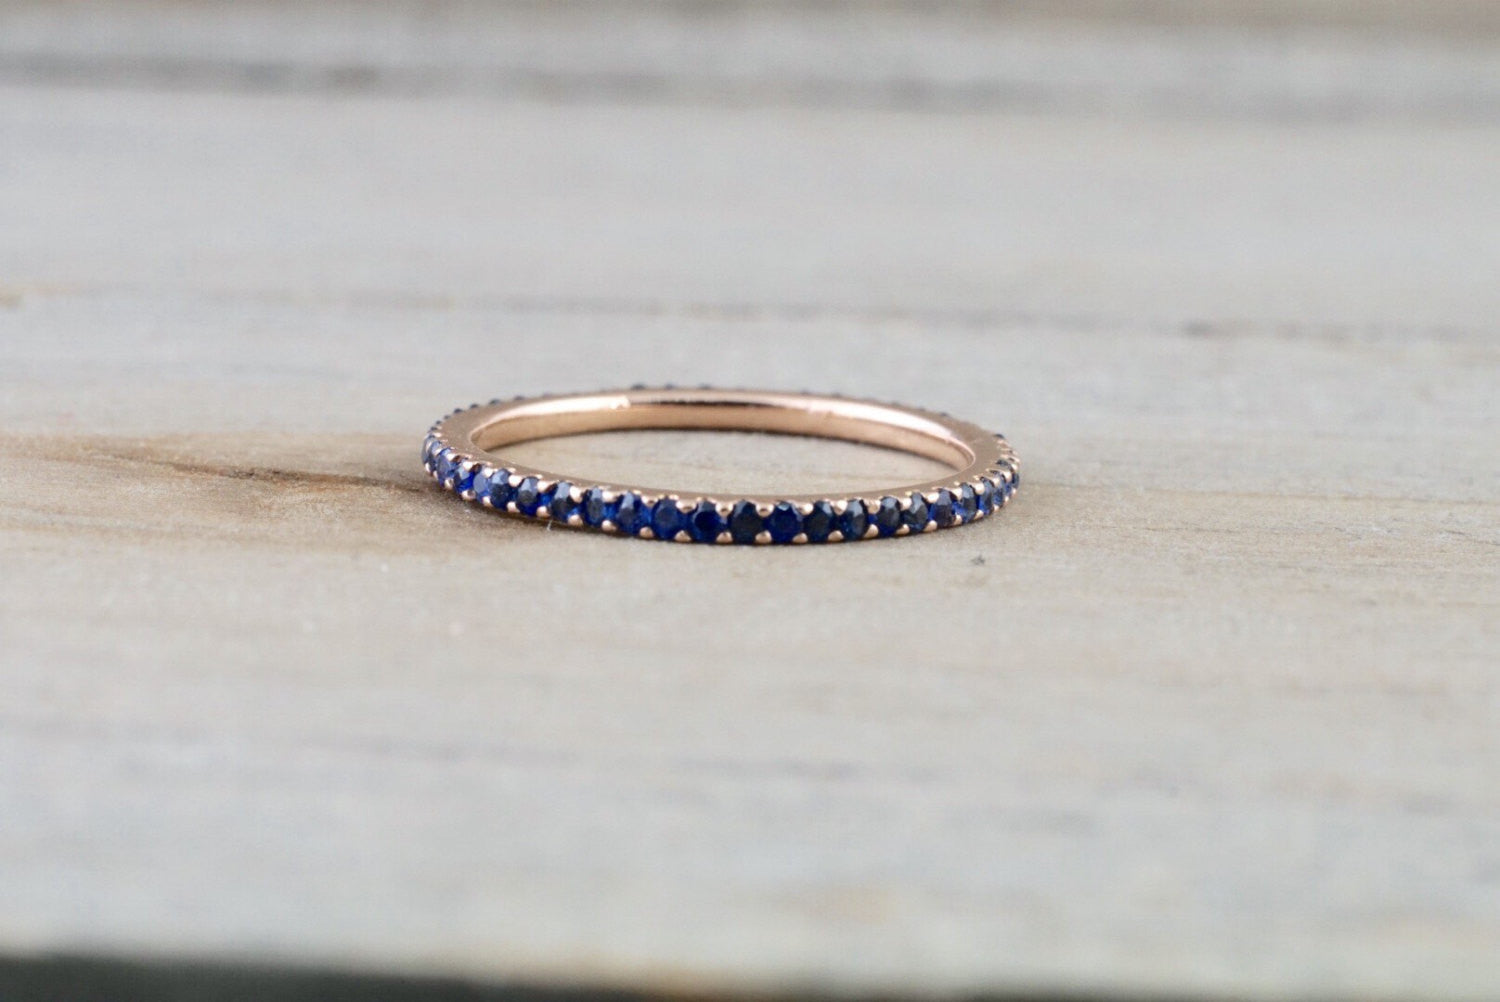 products rose a sapphires around furst ring all band france french gold setting bands pink thin with eternity